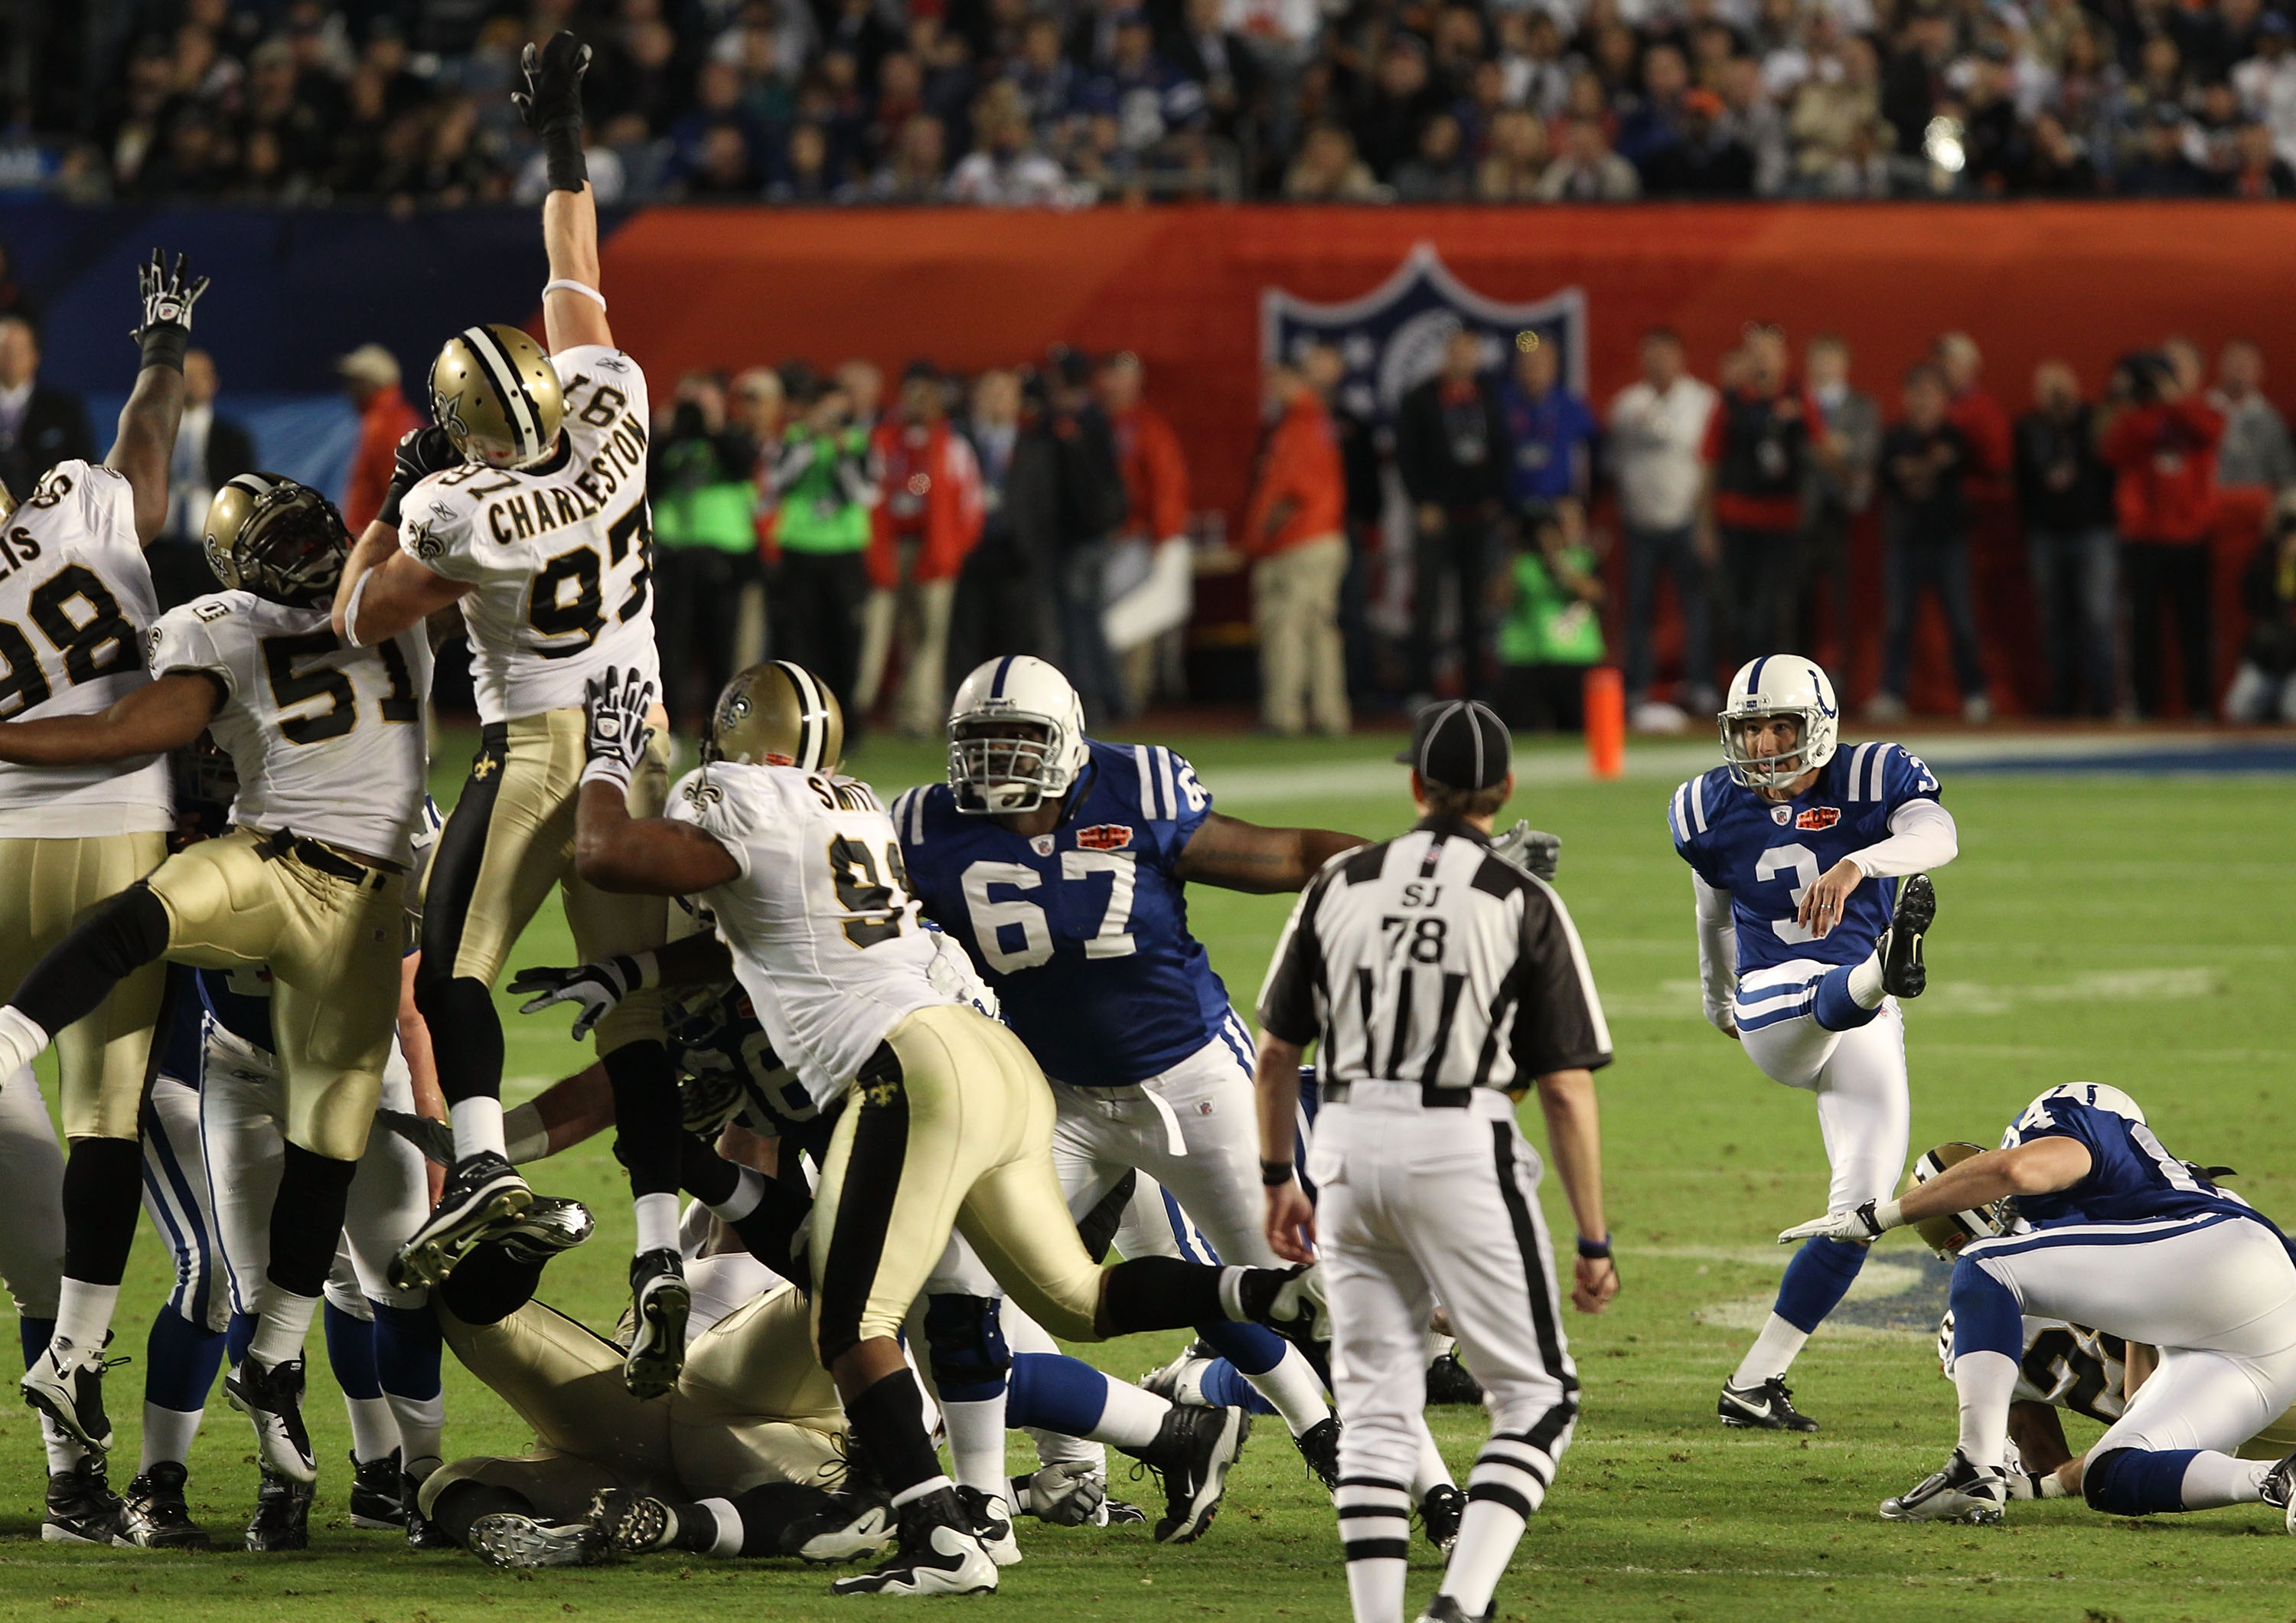 MIAMI GARDENS, FL - FEBRUARY 07:  Matt Stover #3 of the Indianapolis Colts misses a 51 yard field goal in the fourth quarter against the New Orleans Saints during Super Bowl XLIV on February 7, 2010 at Sun Life Stadium in Miami Gardens, Florida.  (Photo b